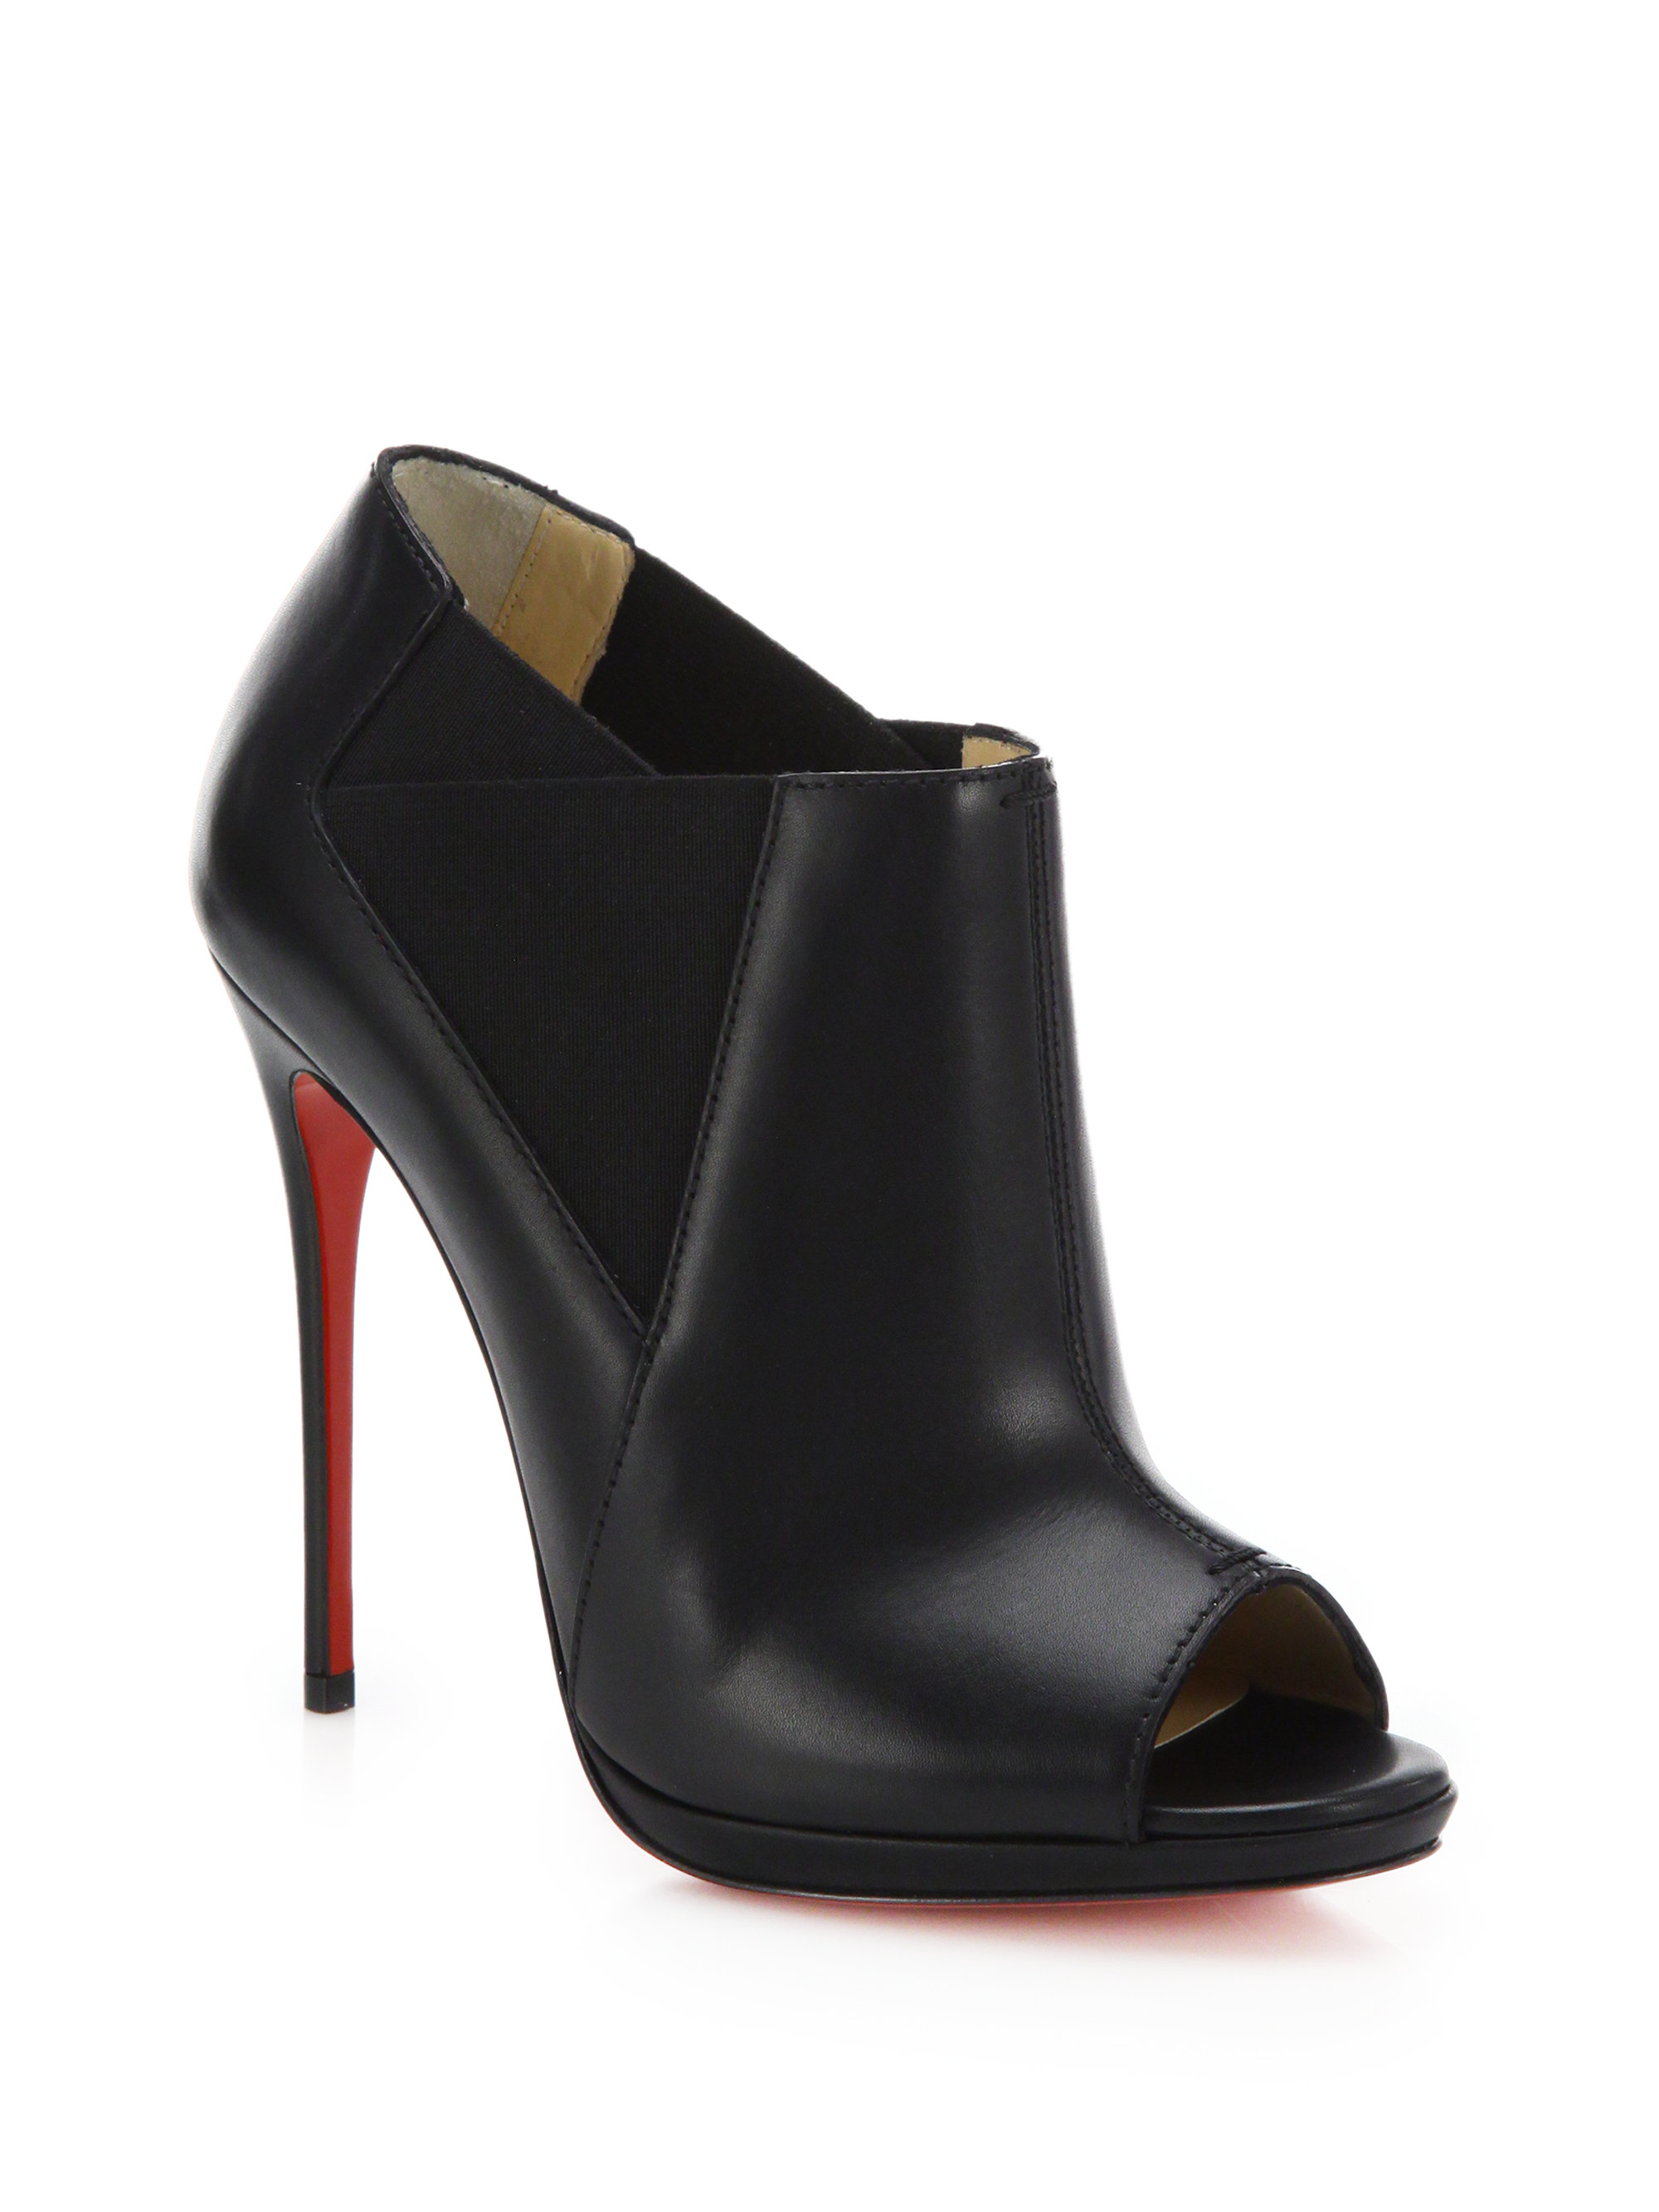 christian louboutin men loafers - Christian louboutin Bootstagram Leather Peep-Toe Booties in Black ...